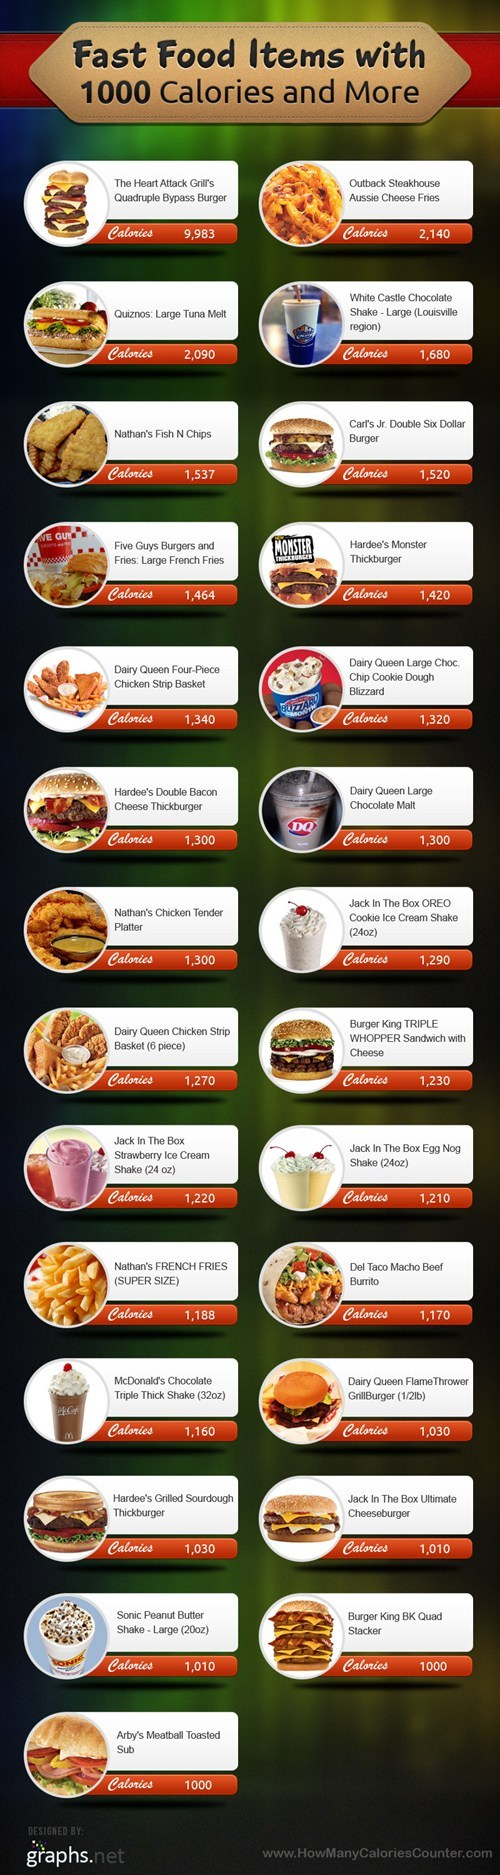 Heart Attack Grill calories health obesity infographic fast food - 6889786624